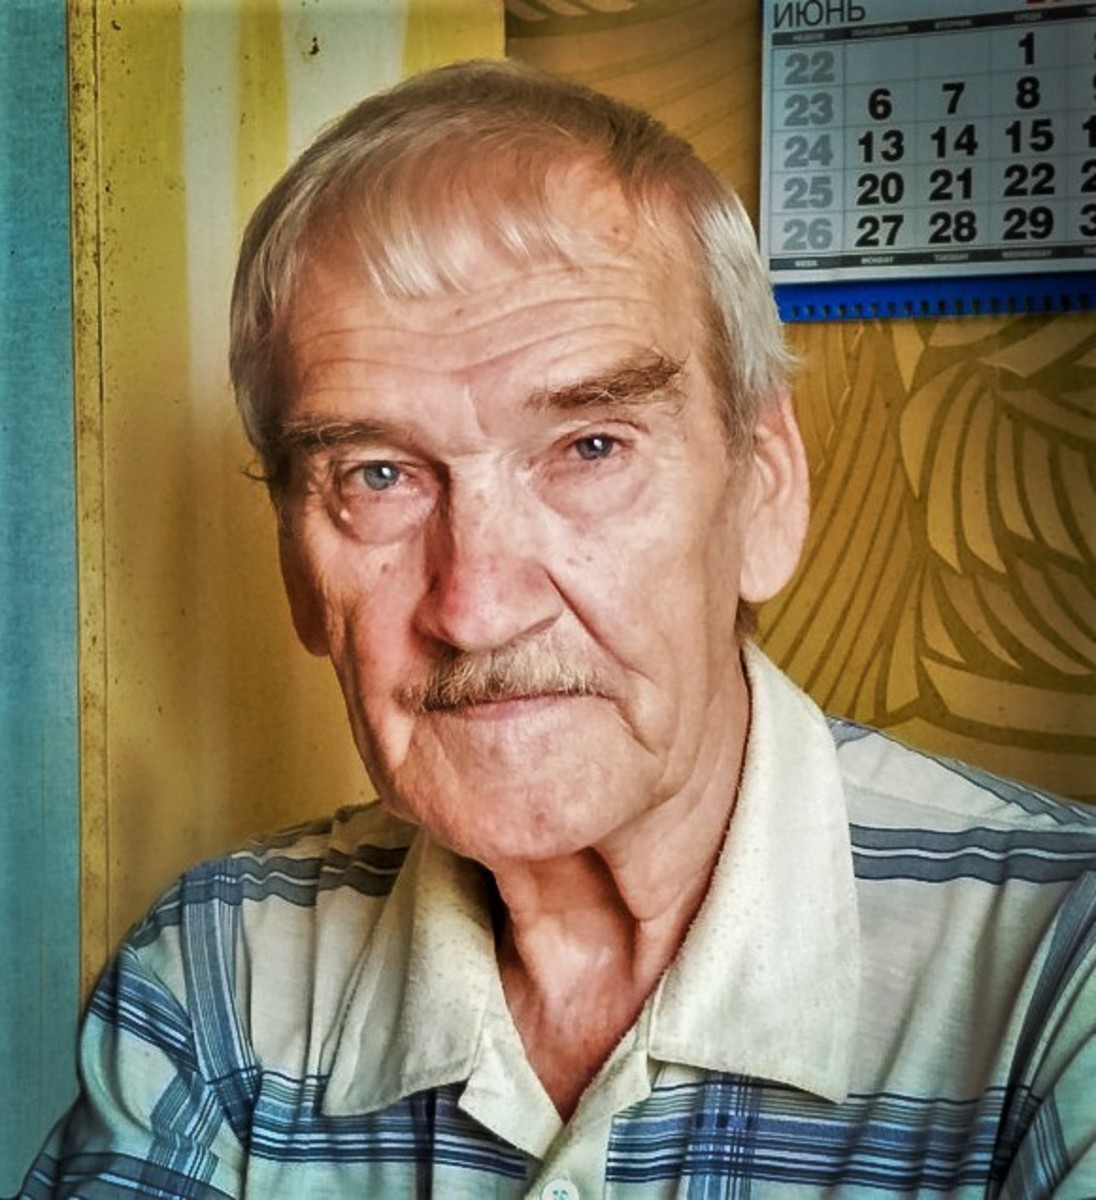 Stanislav Petrov, pictured here in 2016.